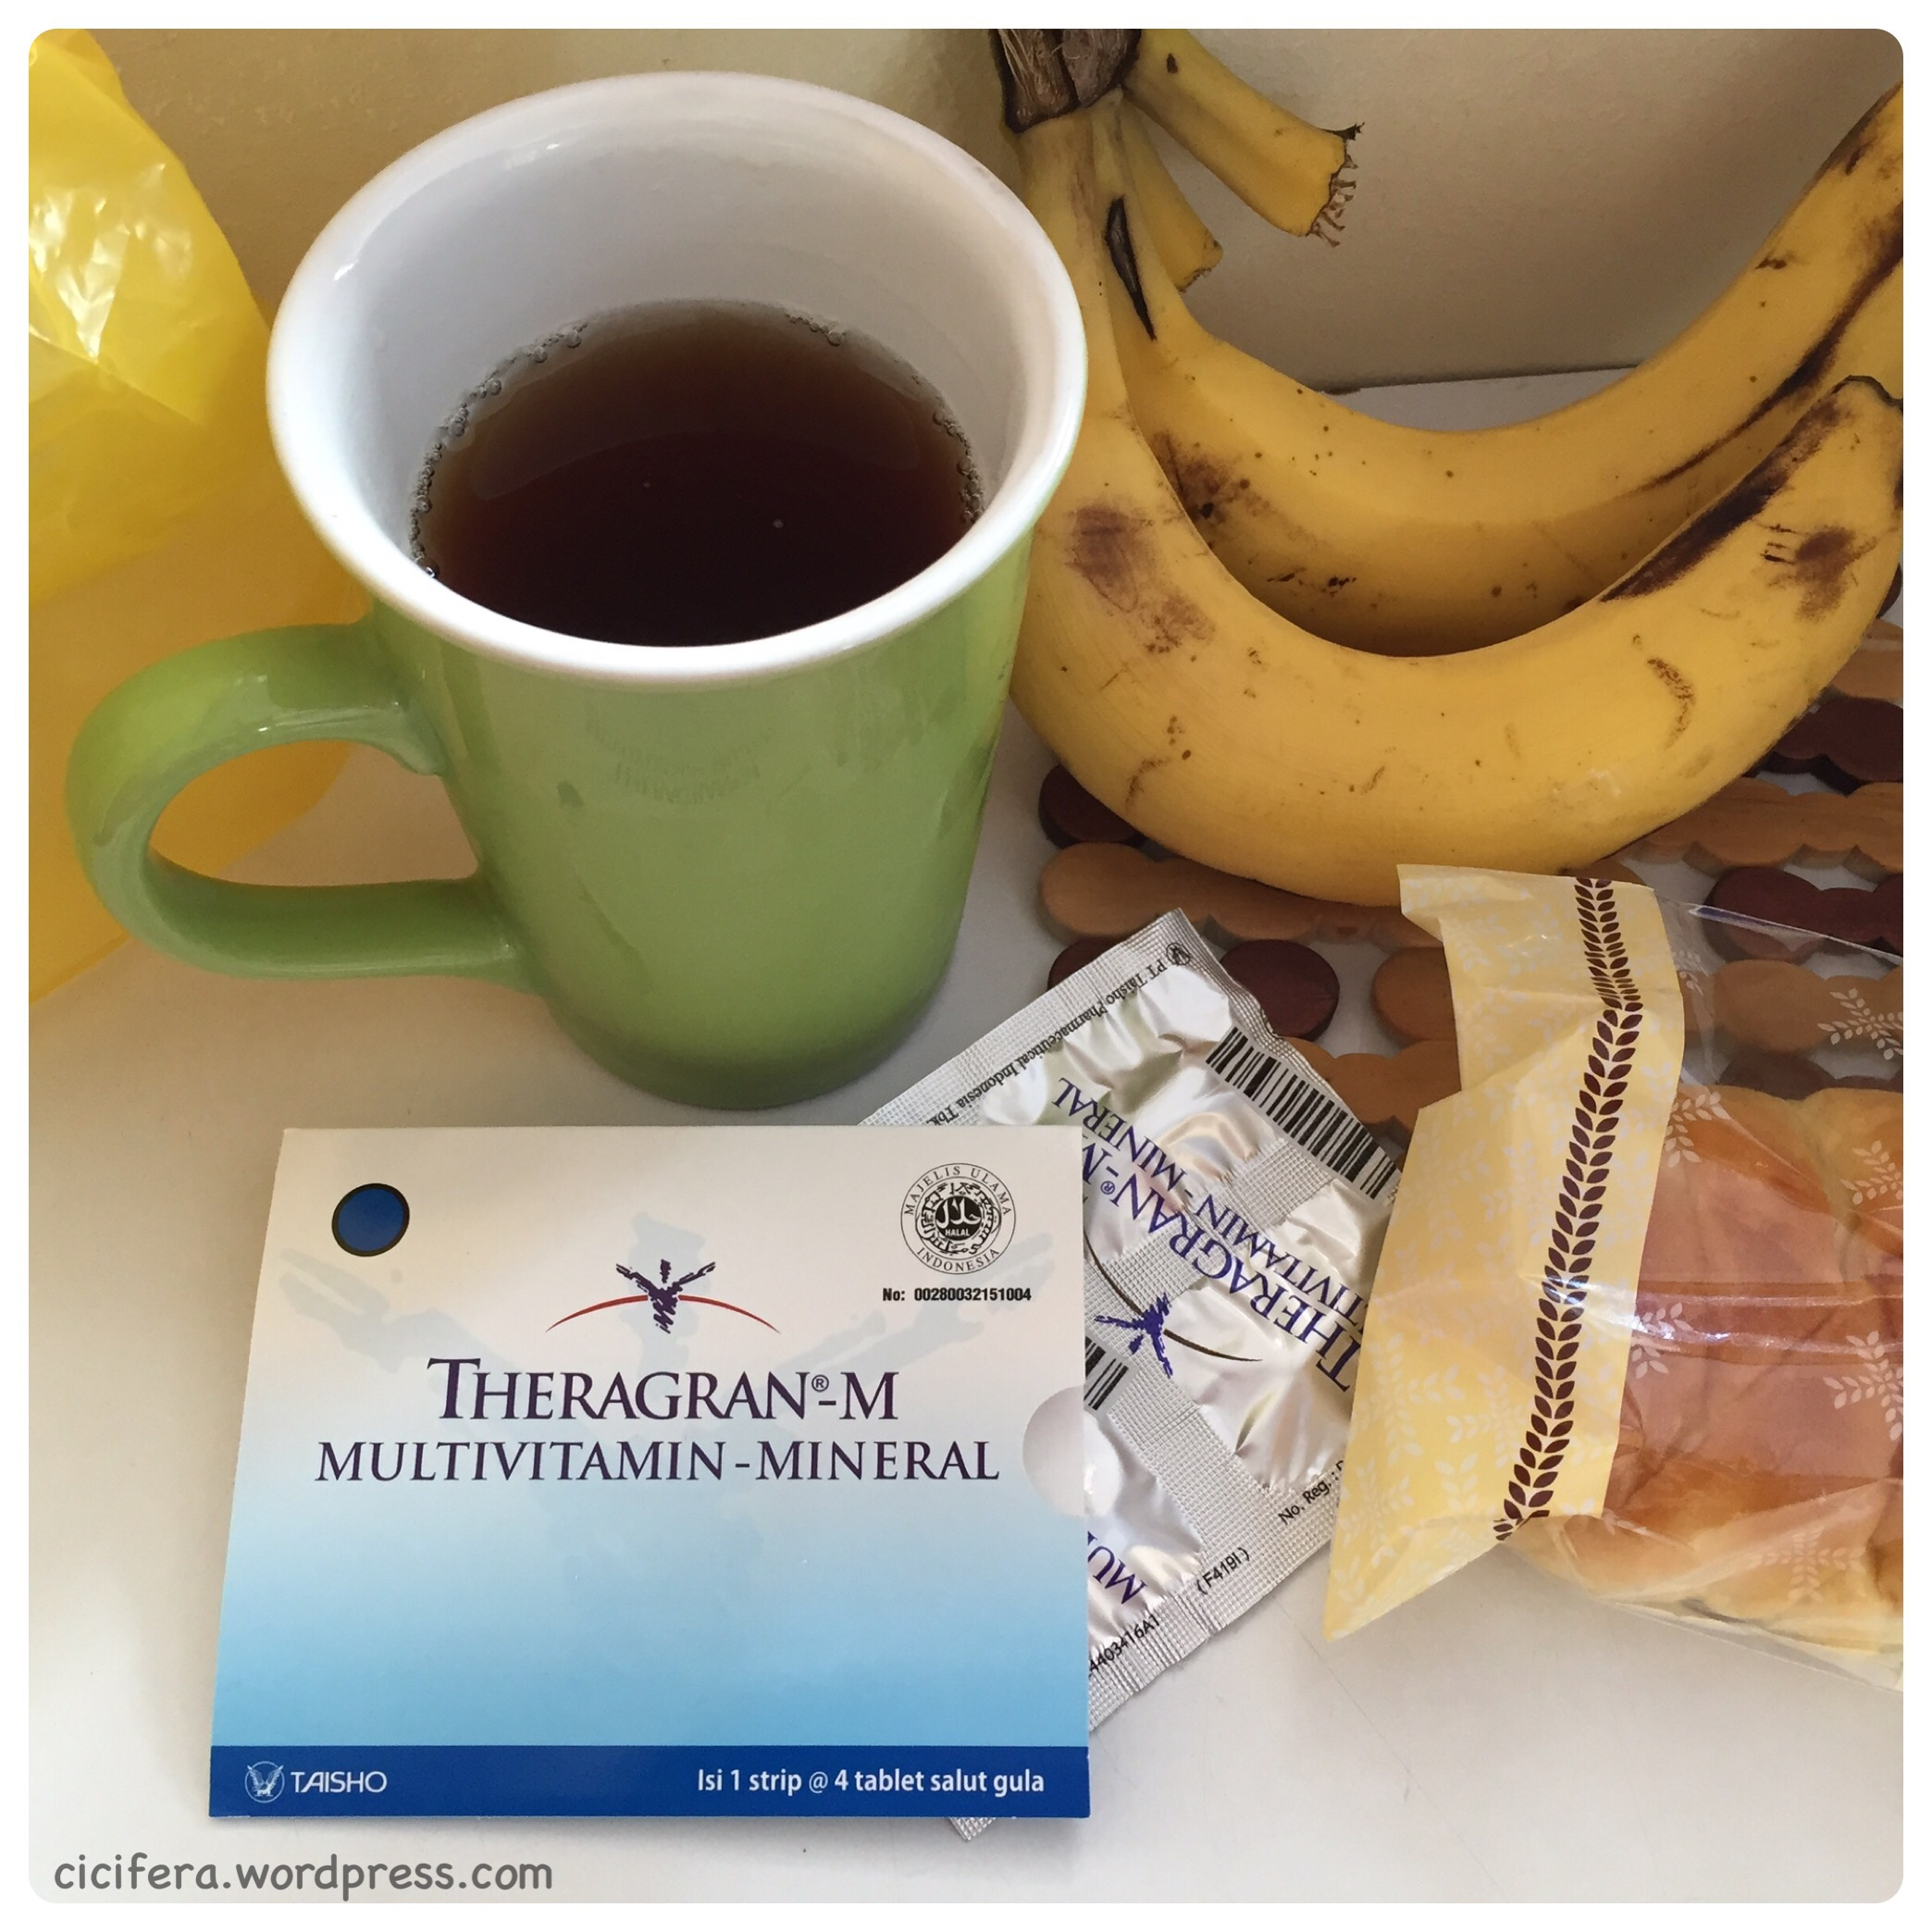 theragran-m multivitamin mineral